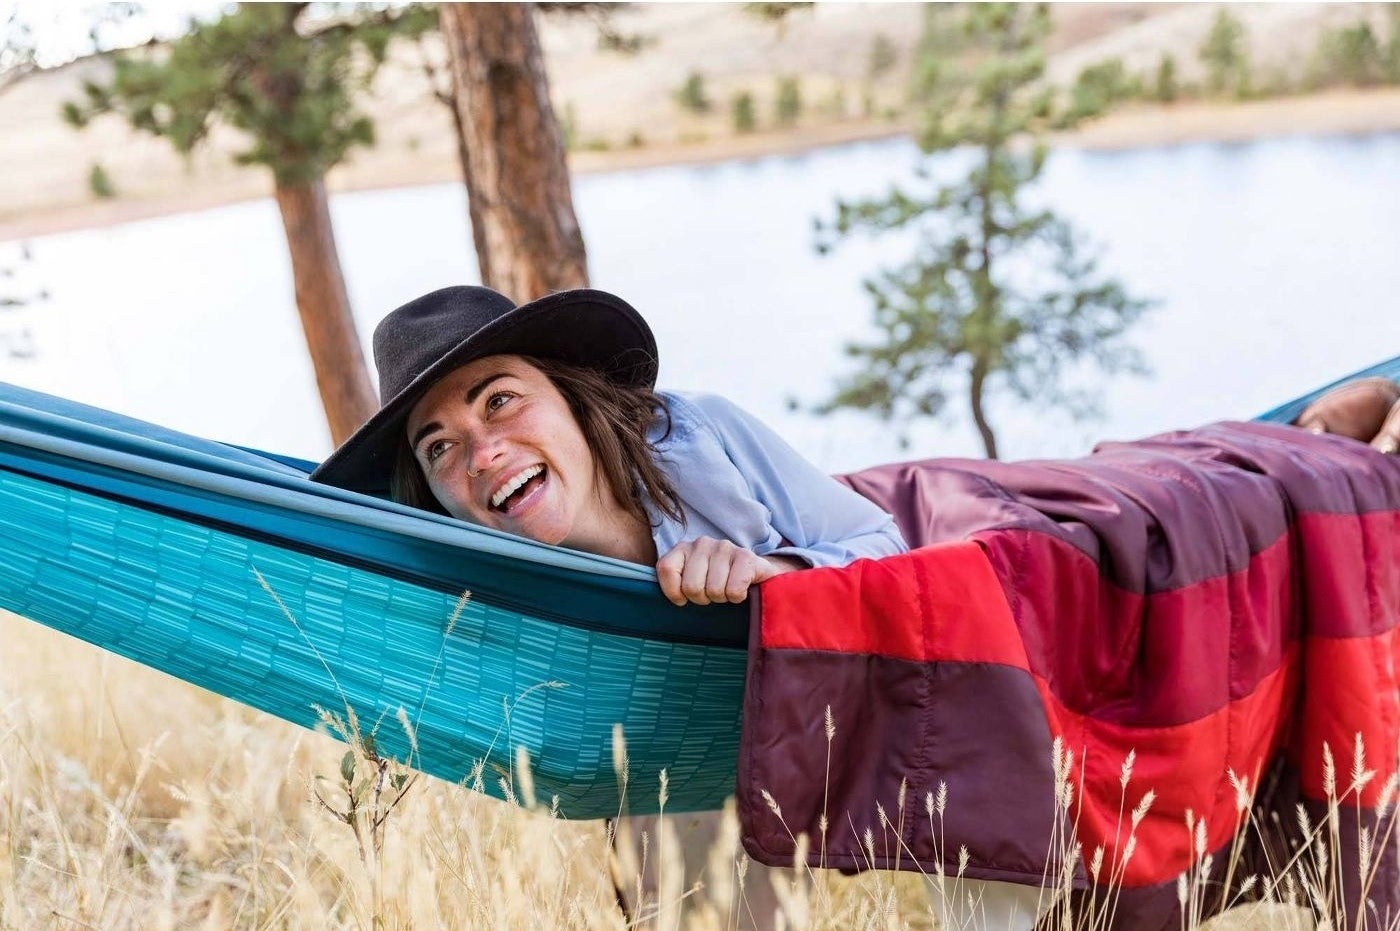 person lounging in a hammock while looking up and smiling